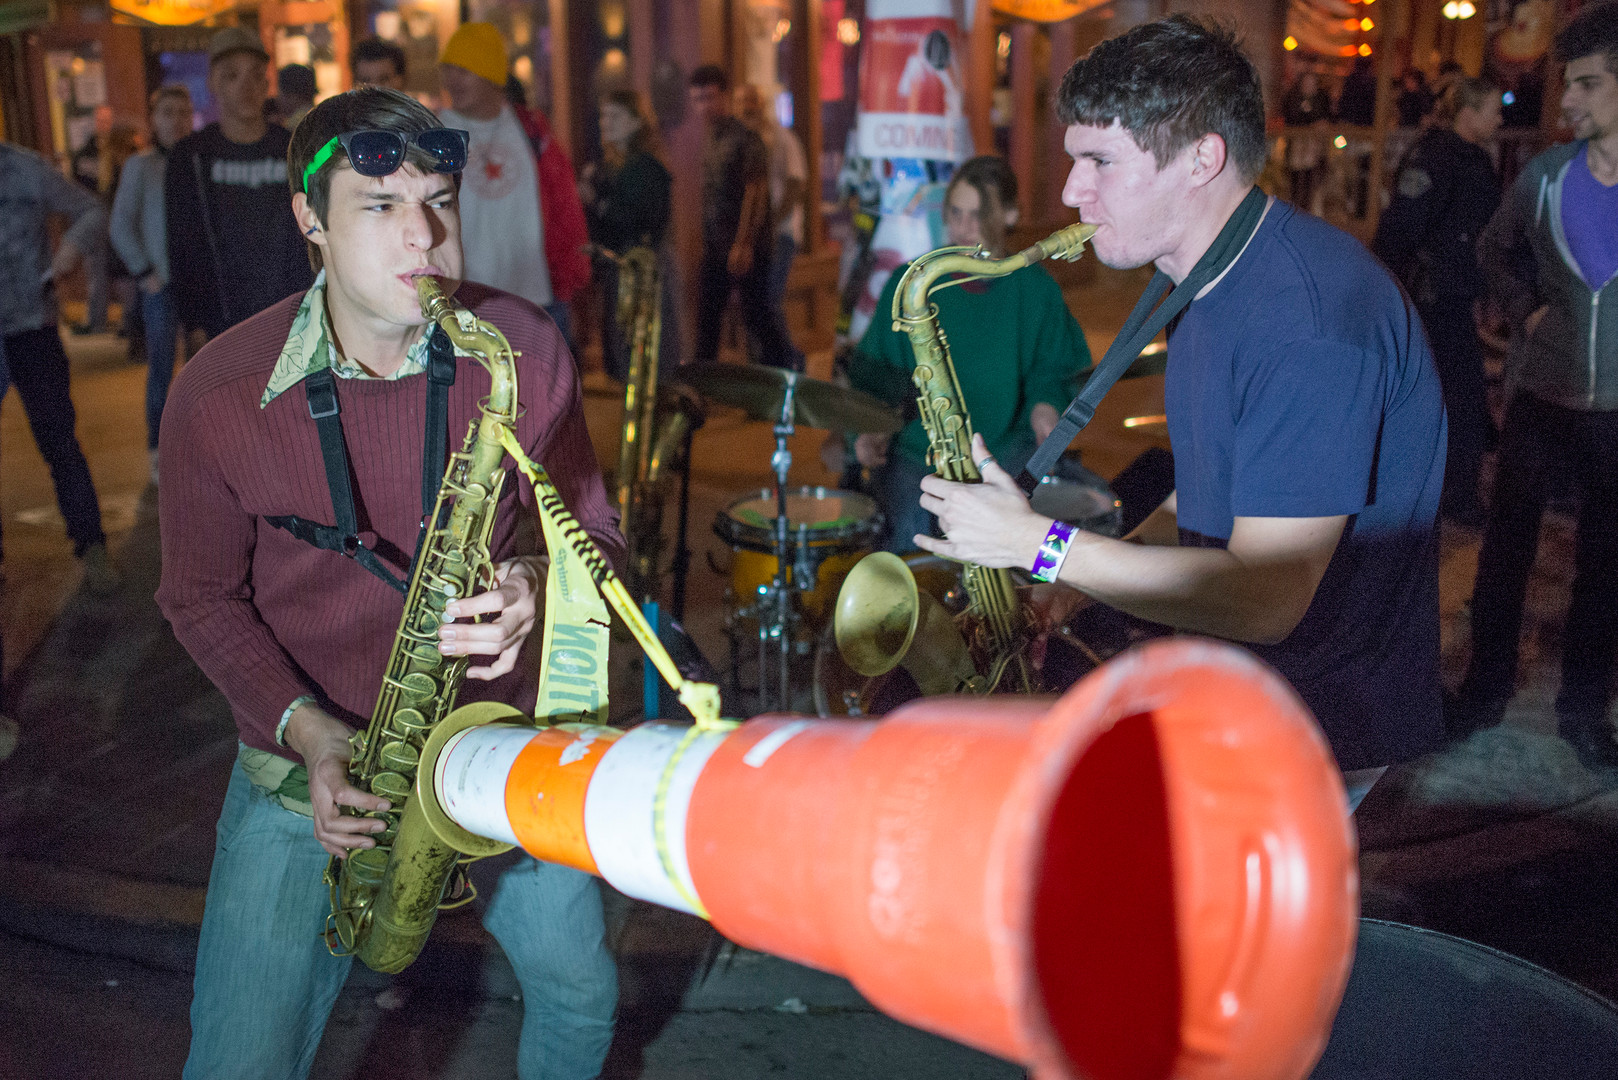 Moon Hooch performs on Sixth Street in Austin during South by Southwest. AUSTIN HUMPHREYS/AUSTIN AMERICAN-STATESMAN